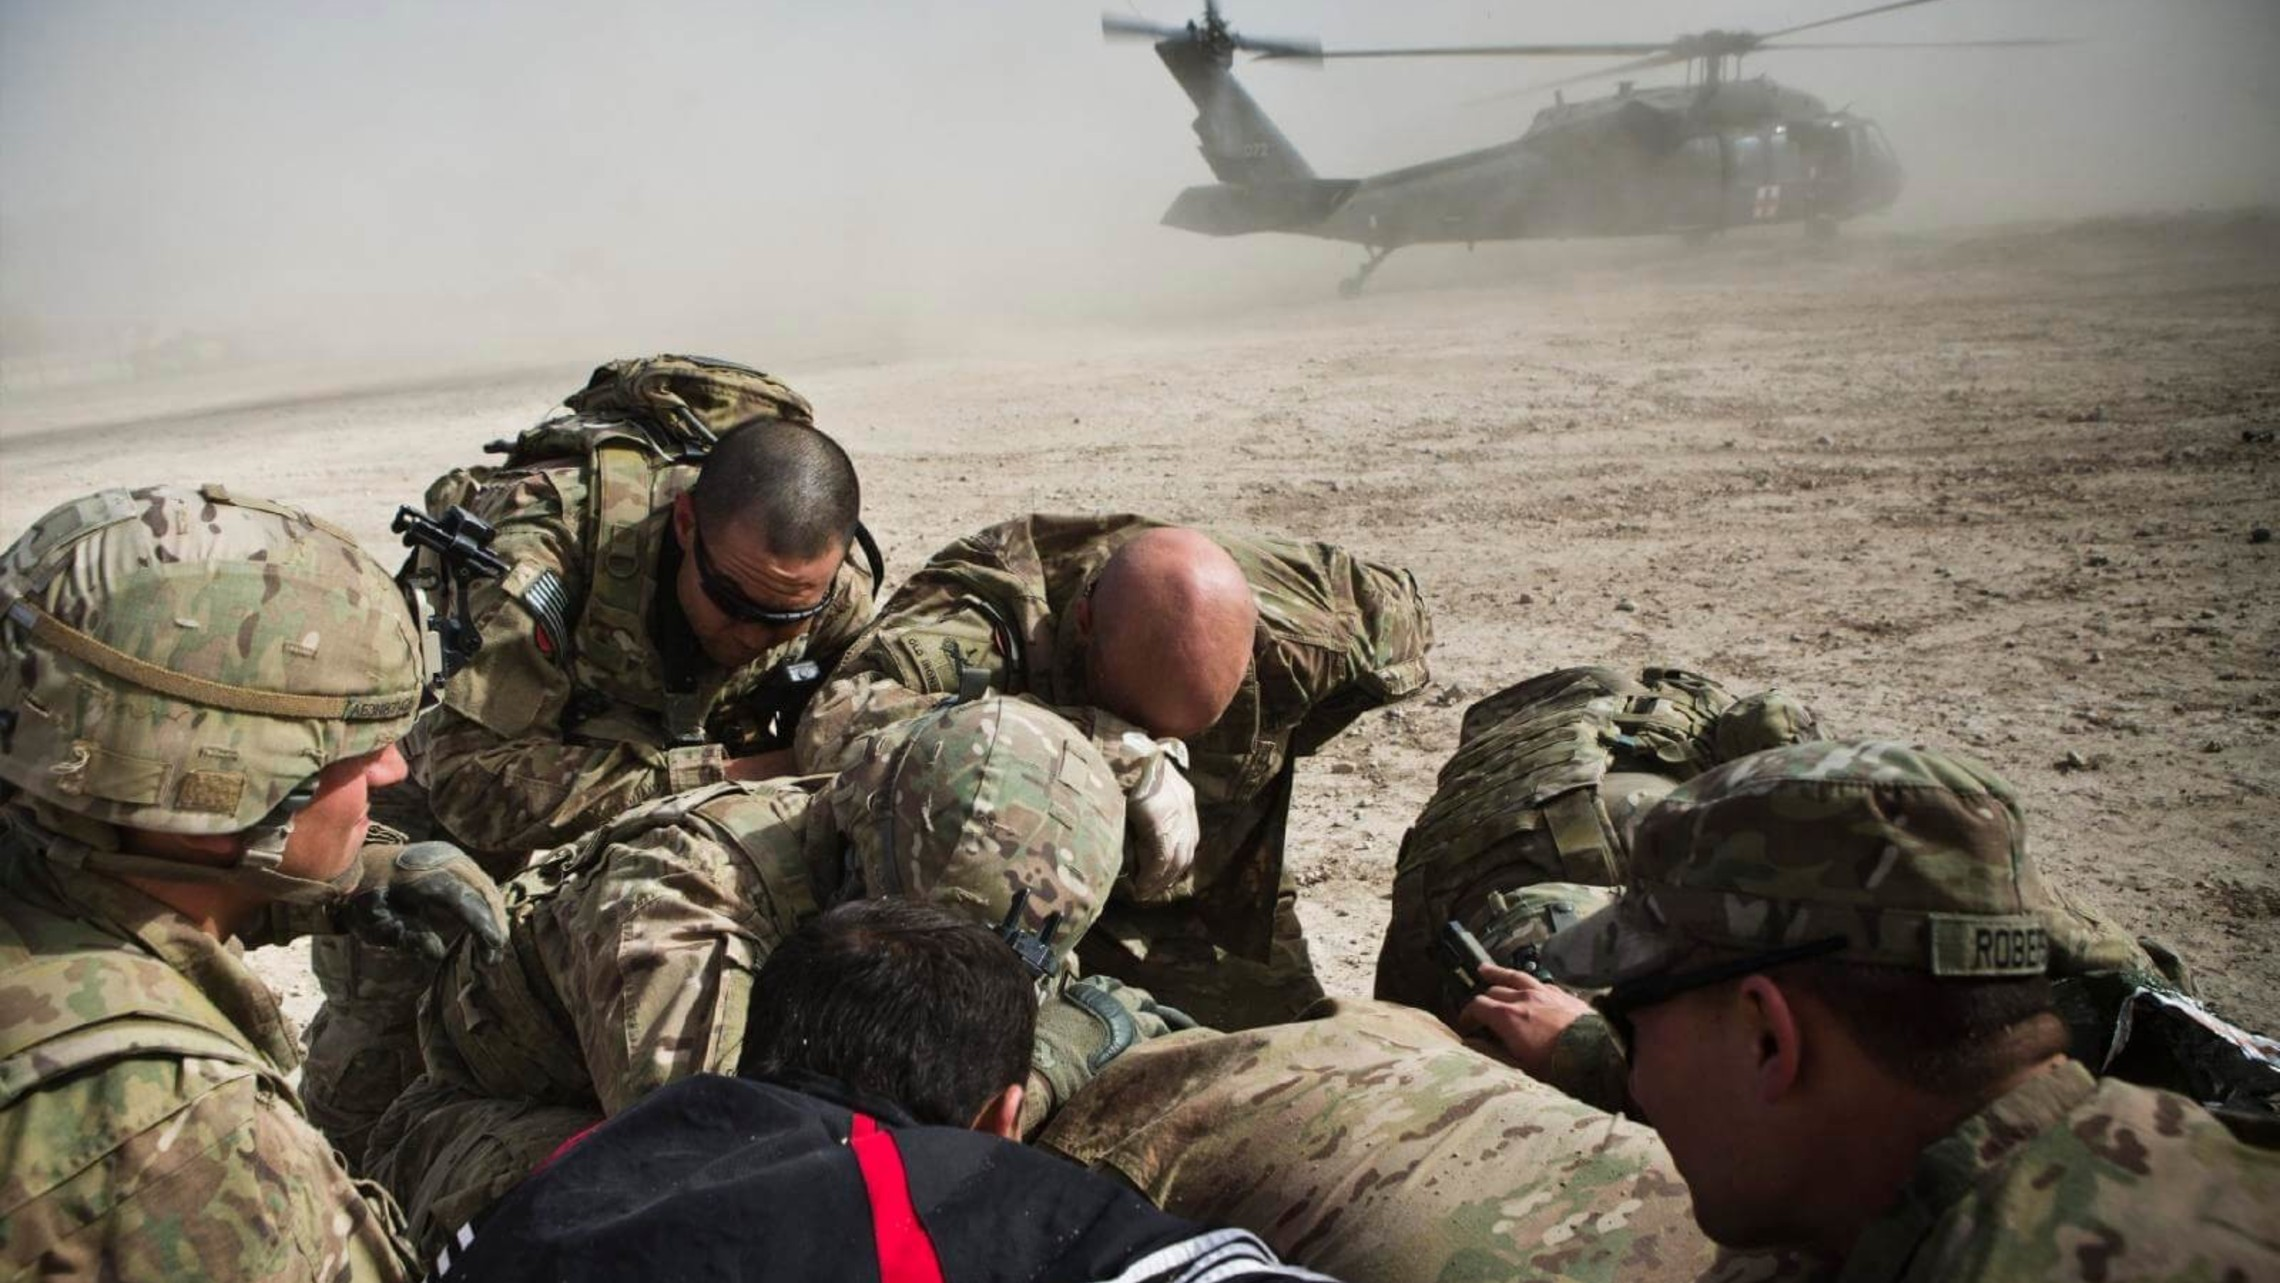 photo of a huddled group of soldiers in the desert in Afghanistan